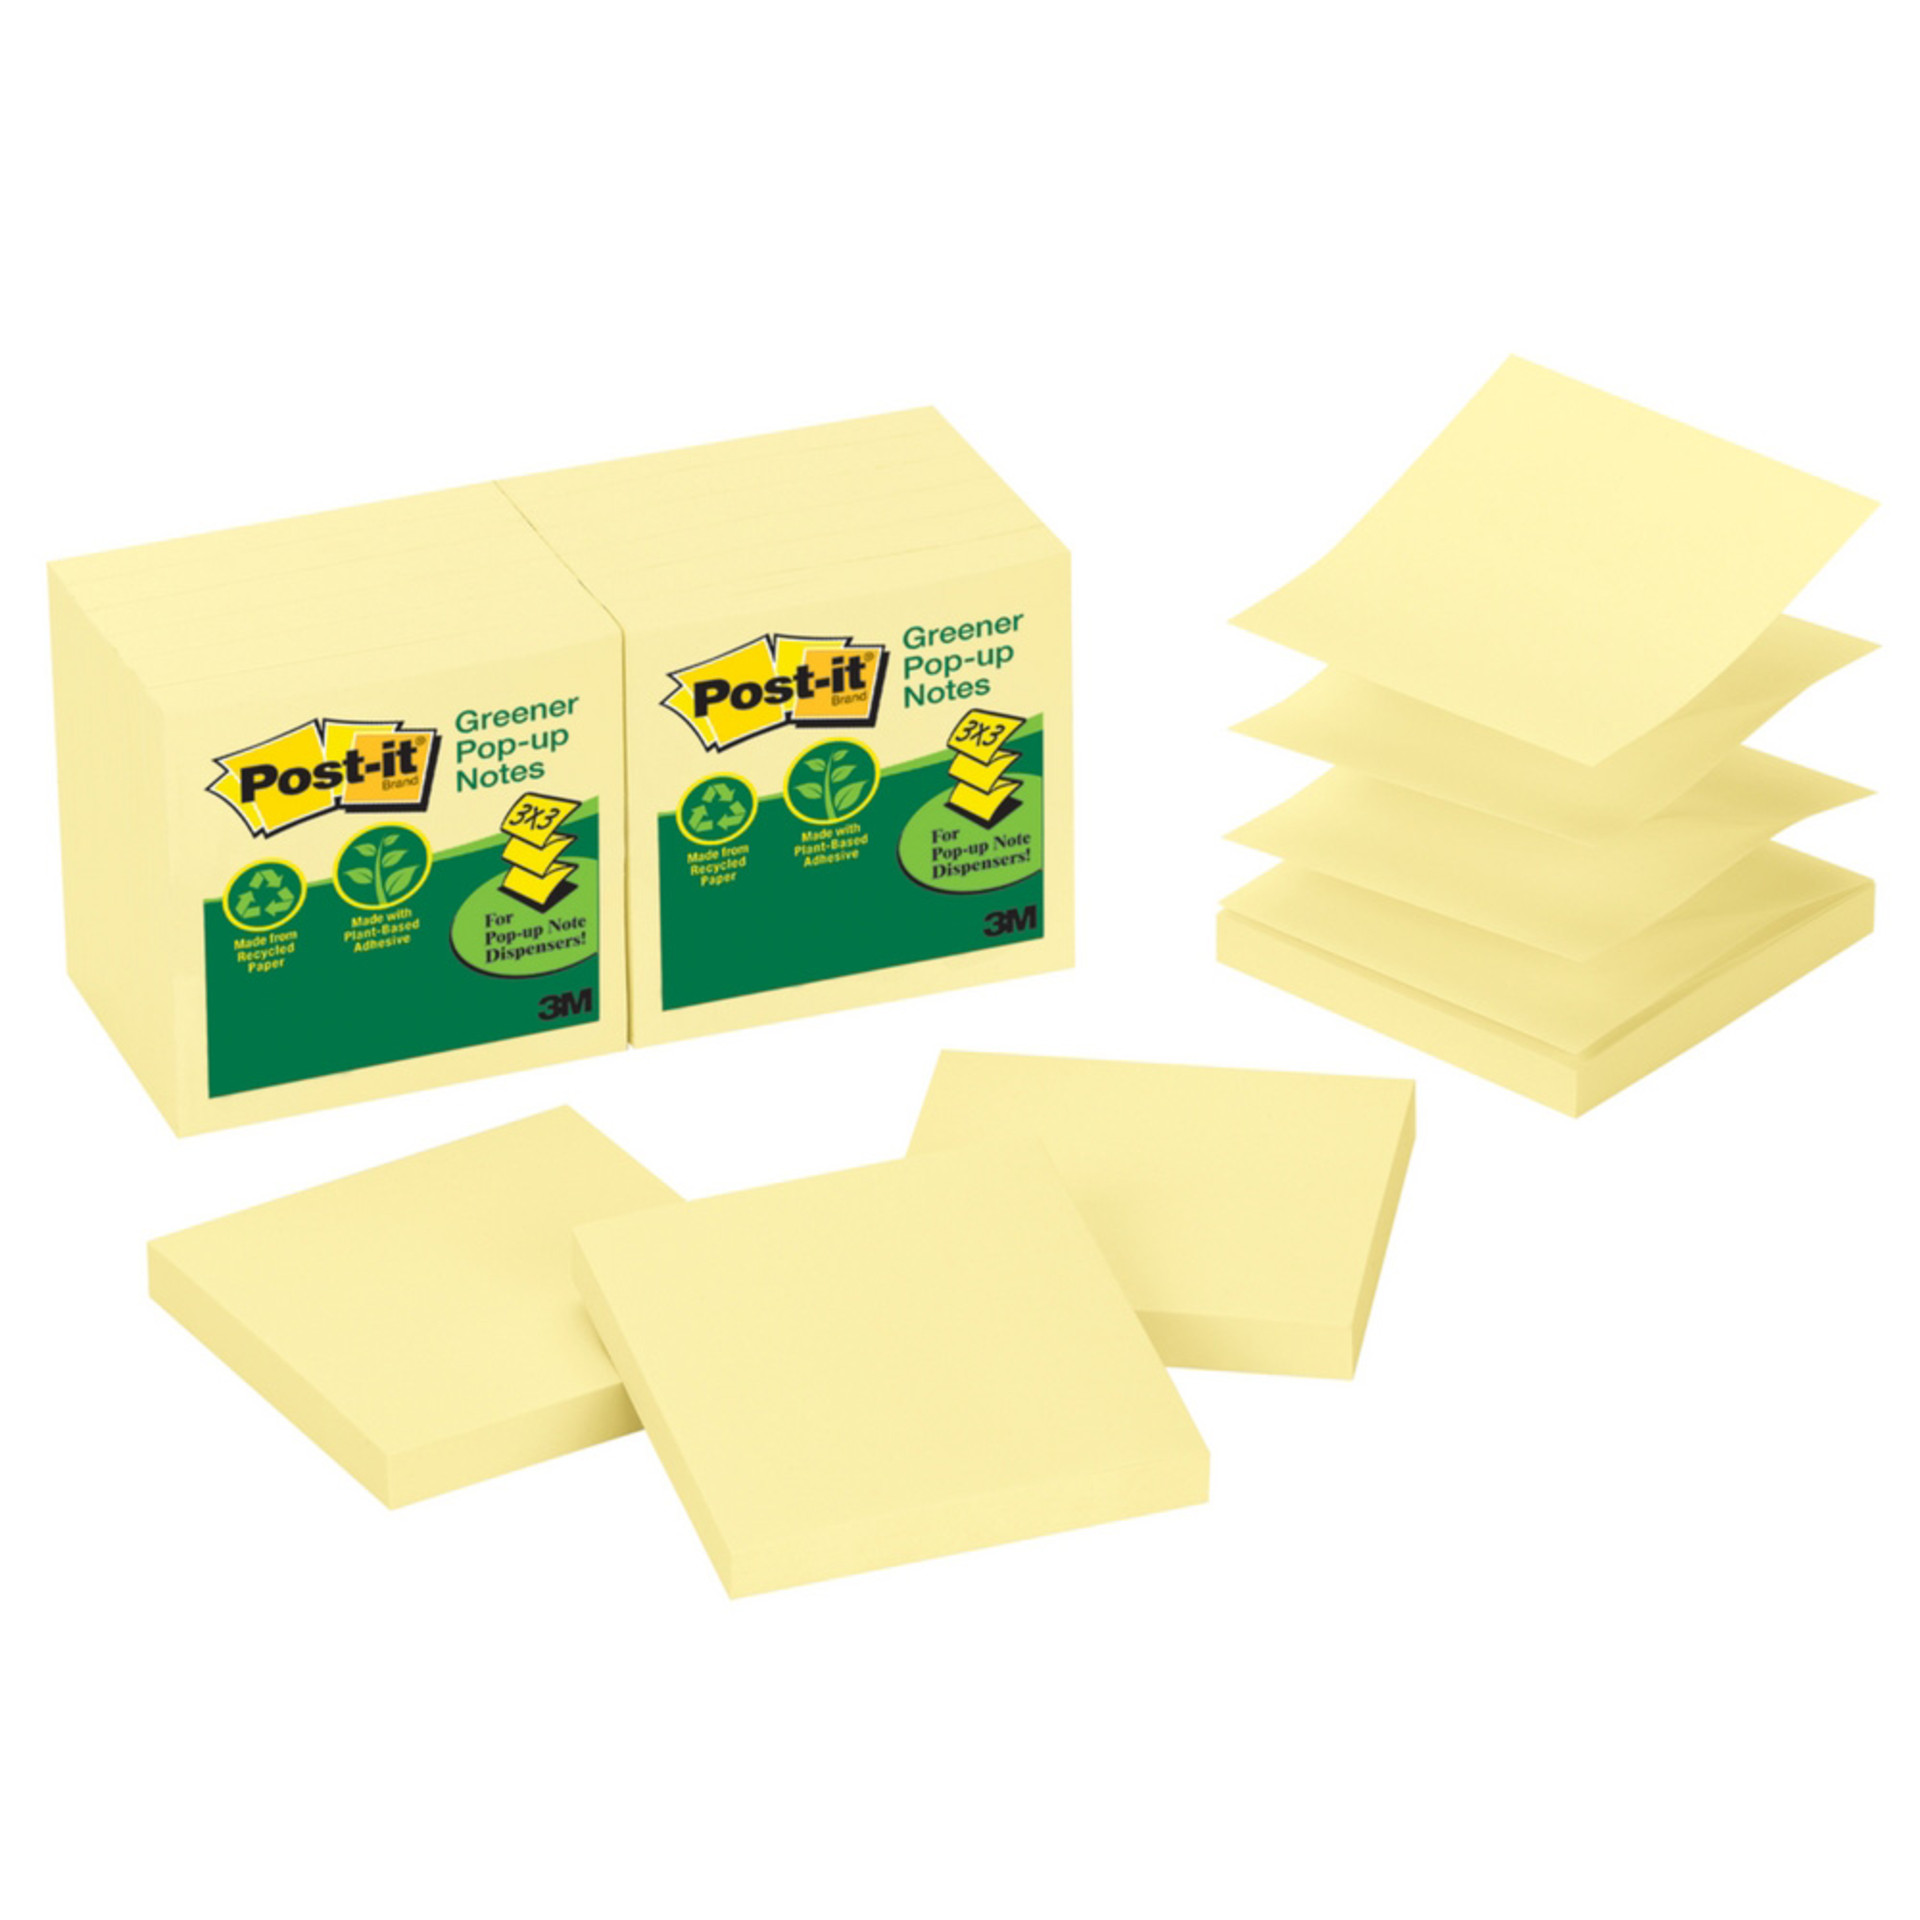 Post-it Canary Greener Recycled Pop-up Sticky Notes